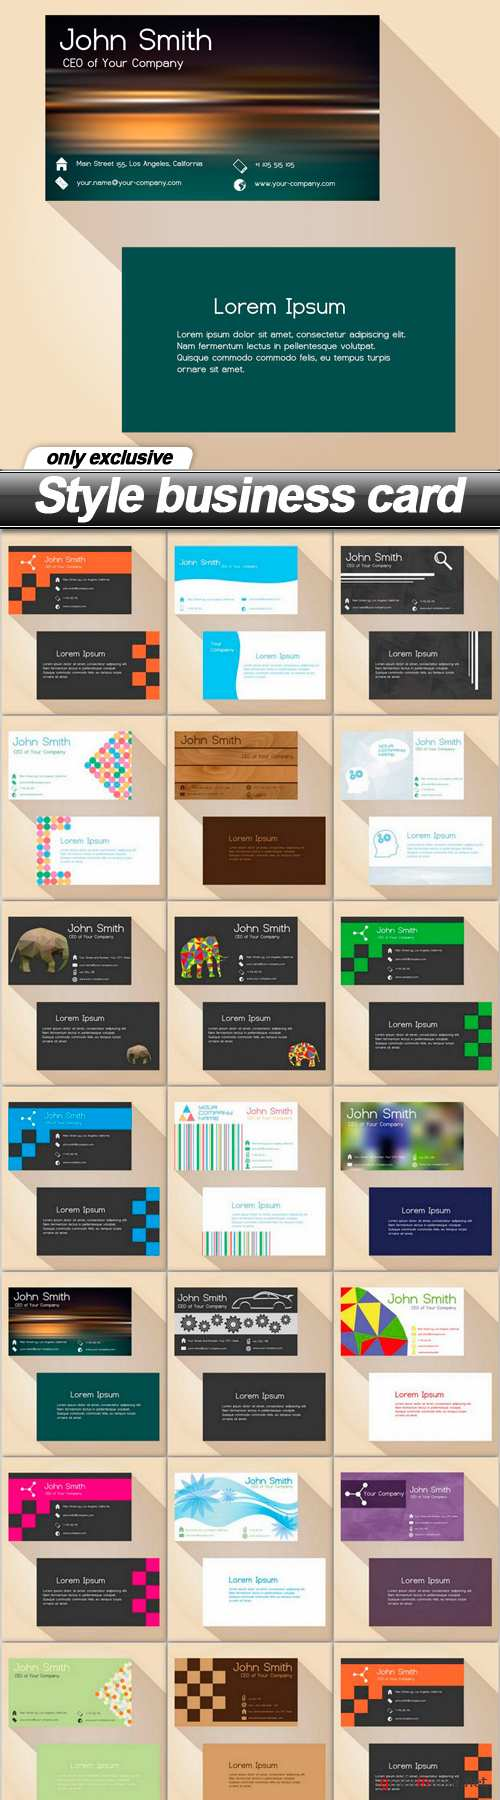 Style business card - 20 EPS